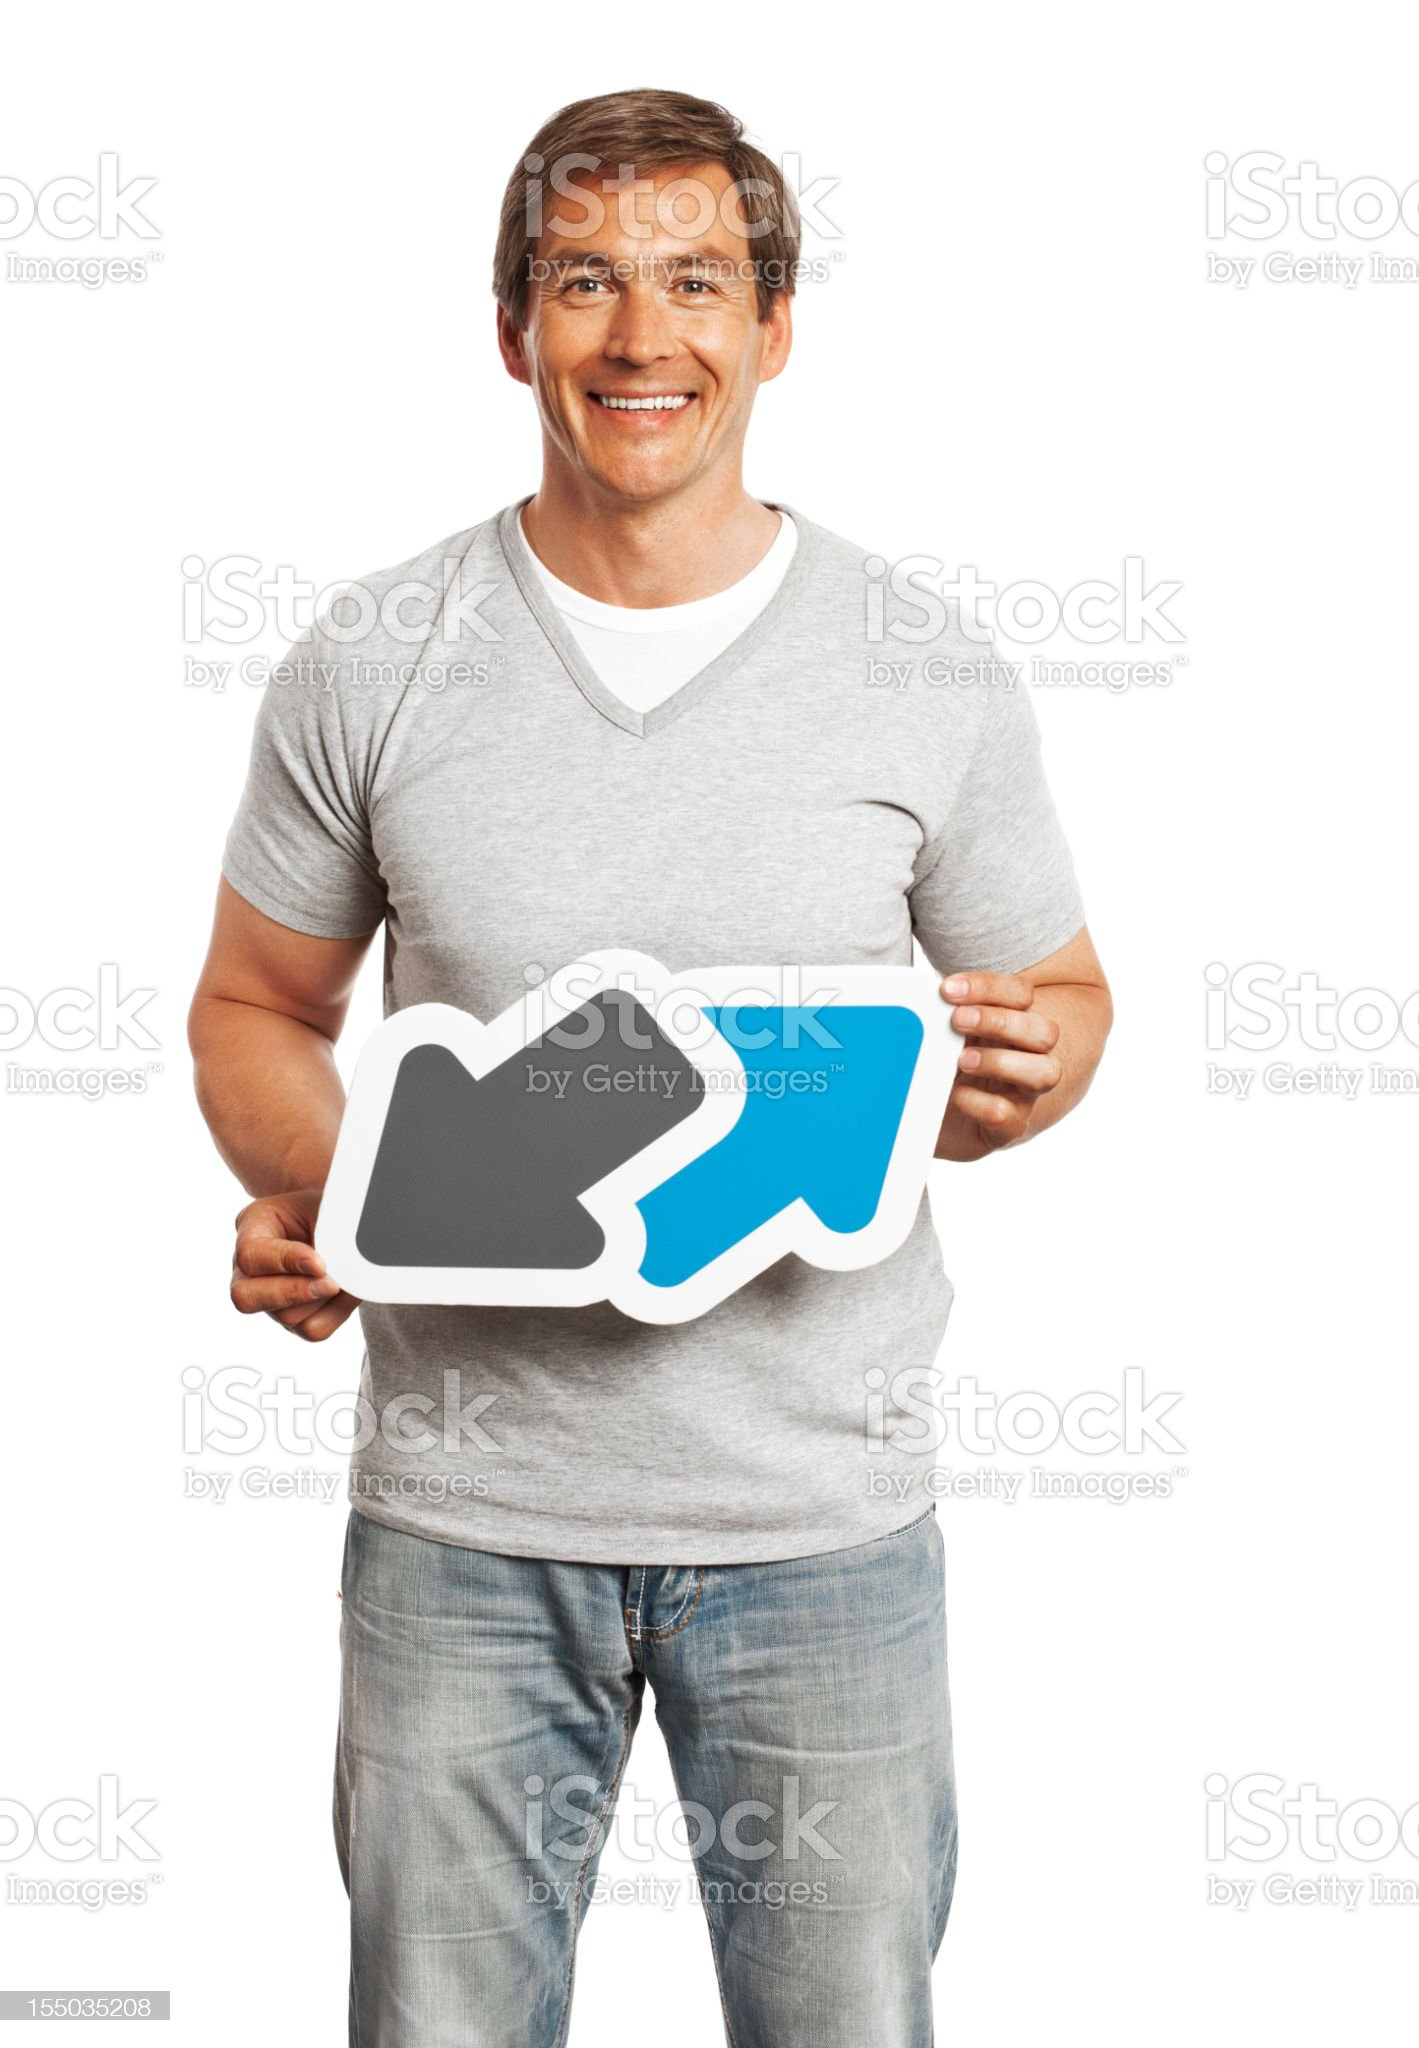 Smiling man holding data trade sign isolated on white background. royalty-free stock photo